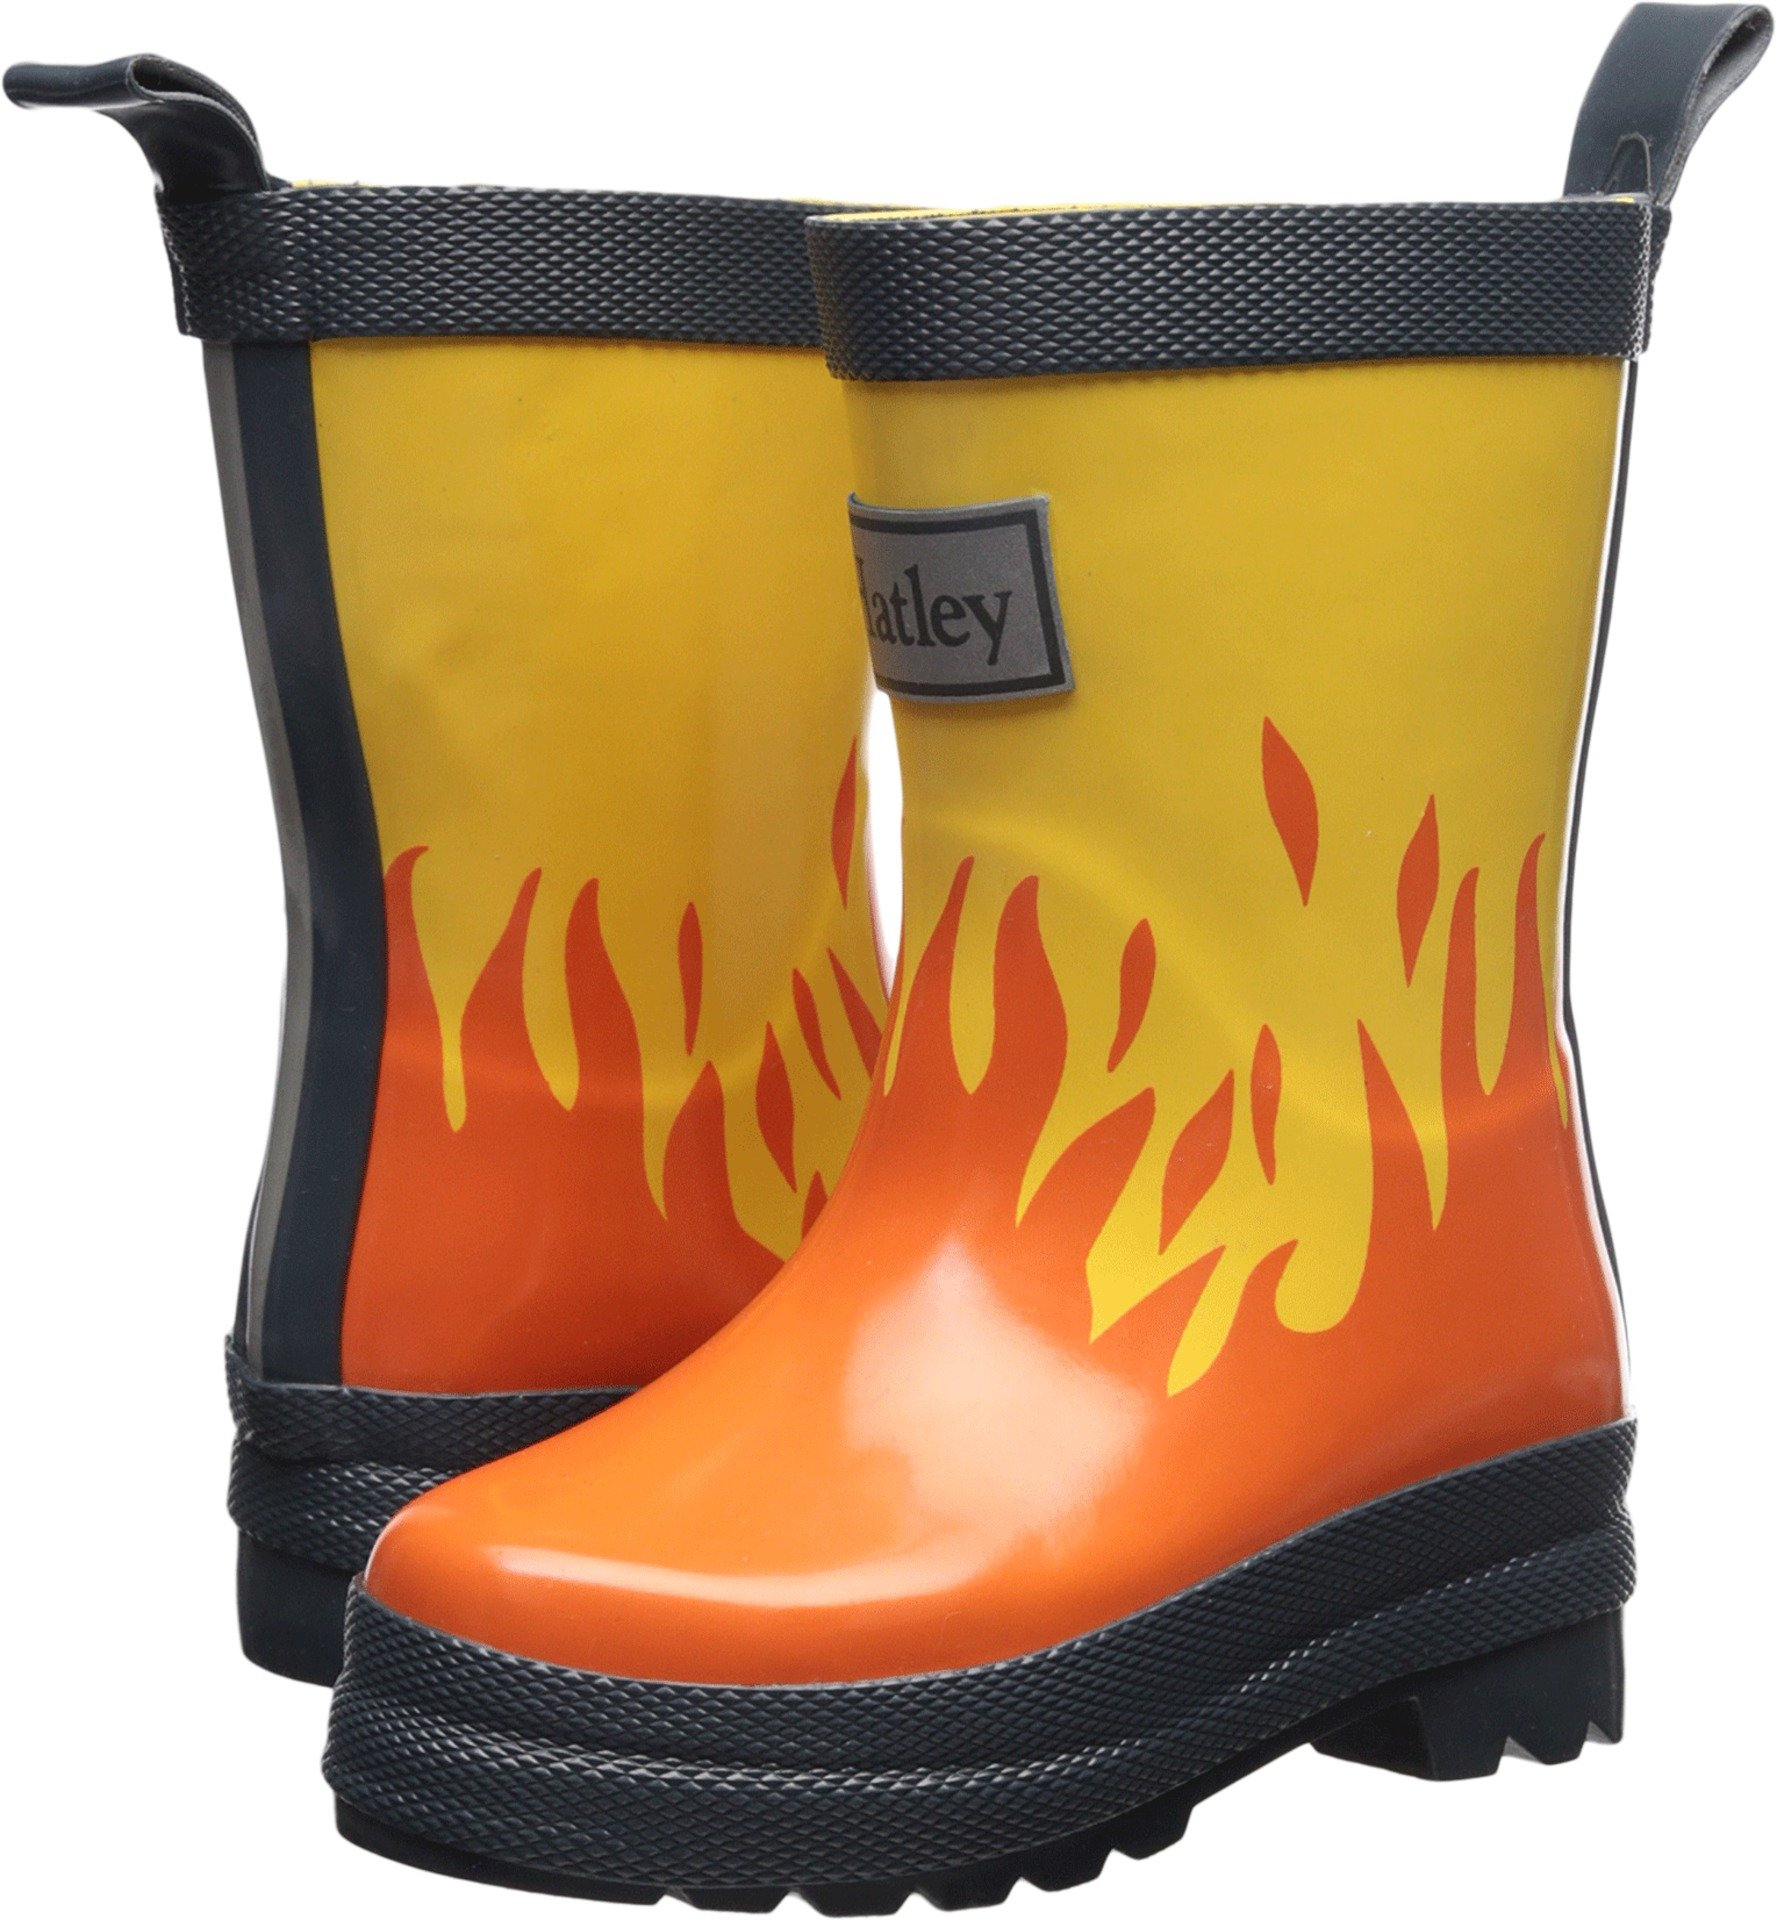 Hatley Boys' Printed Boots Rain Accessory, Lots of Fire, 4 M US Toddler